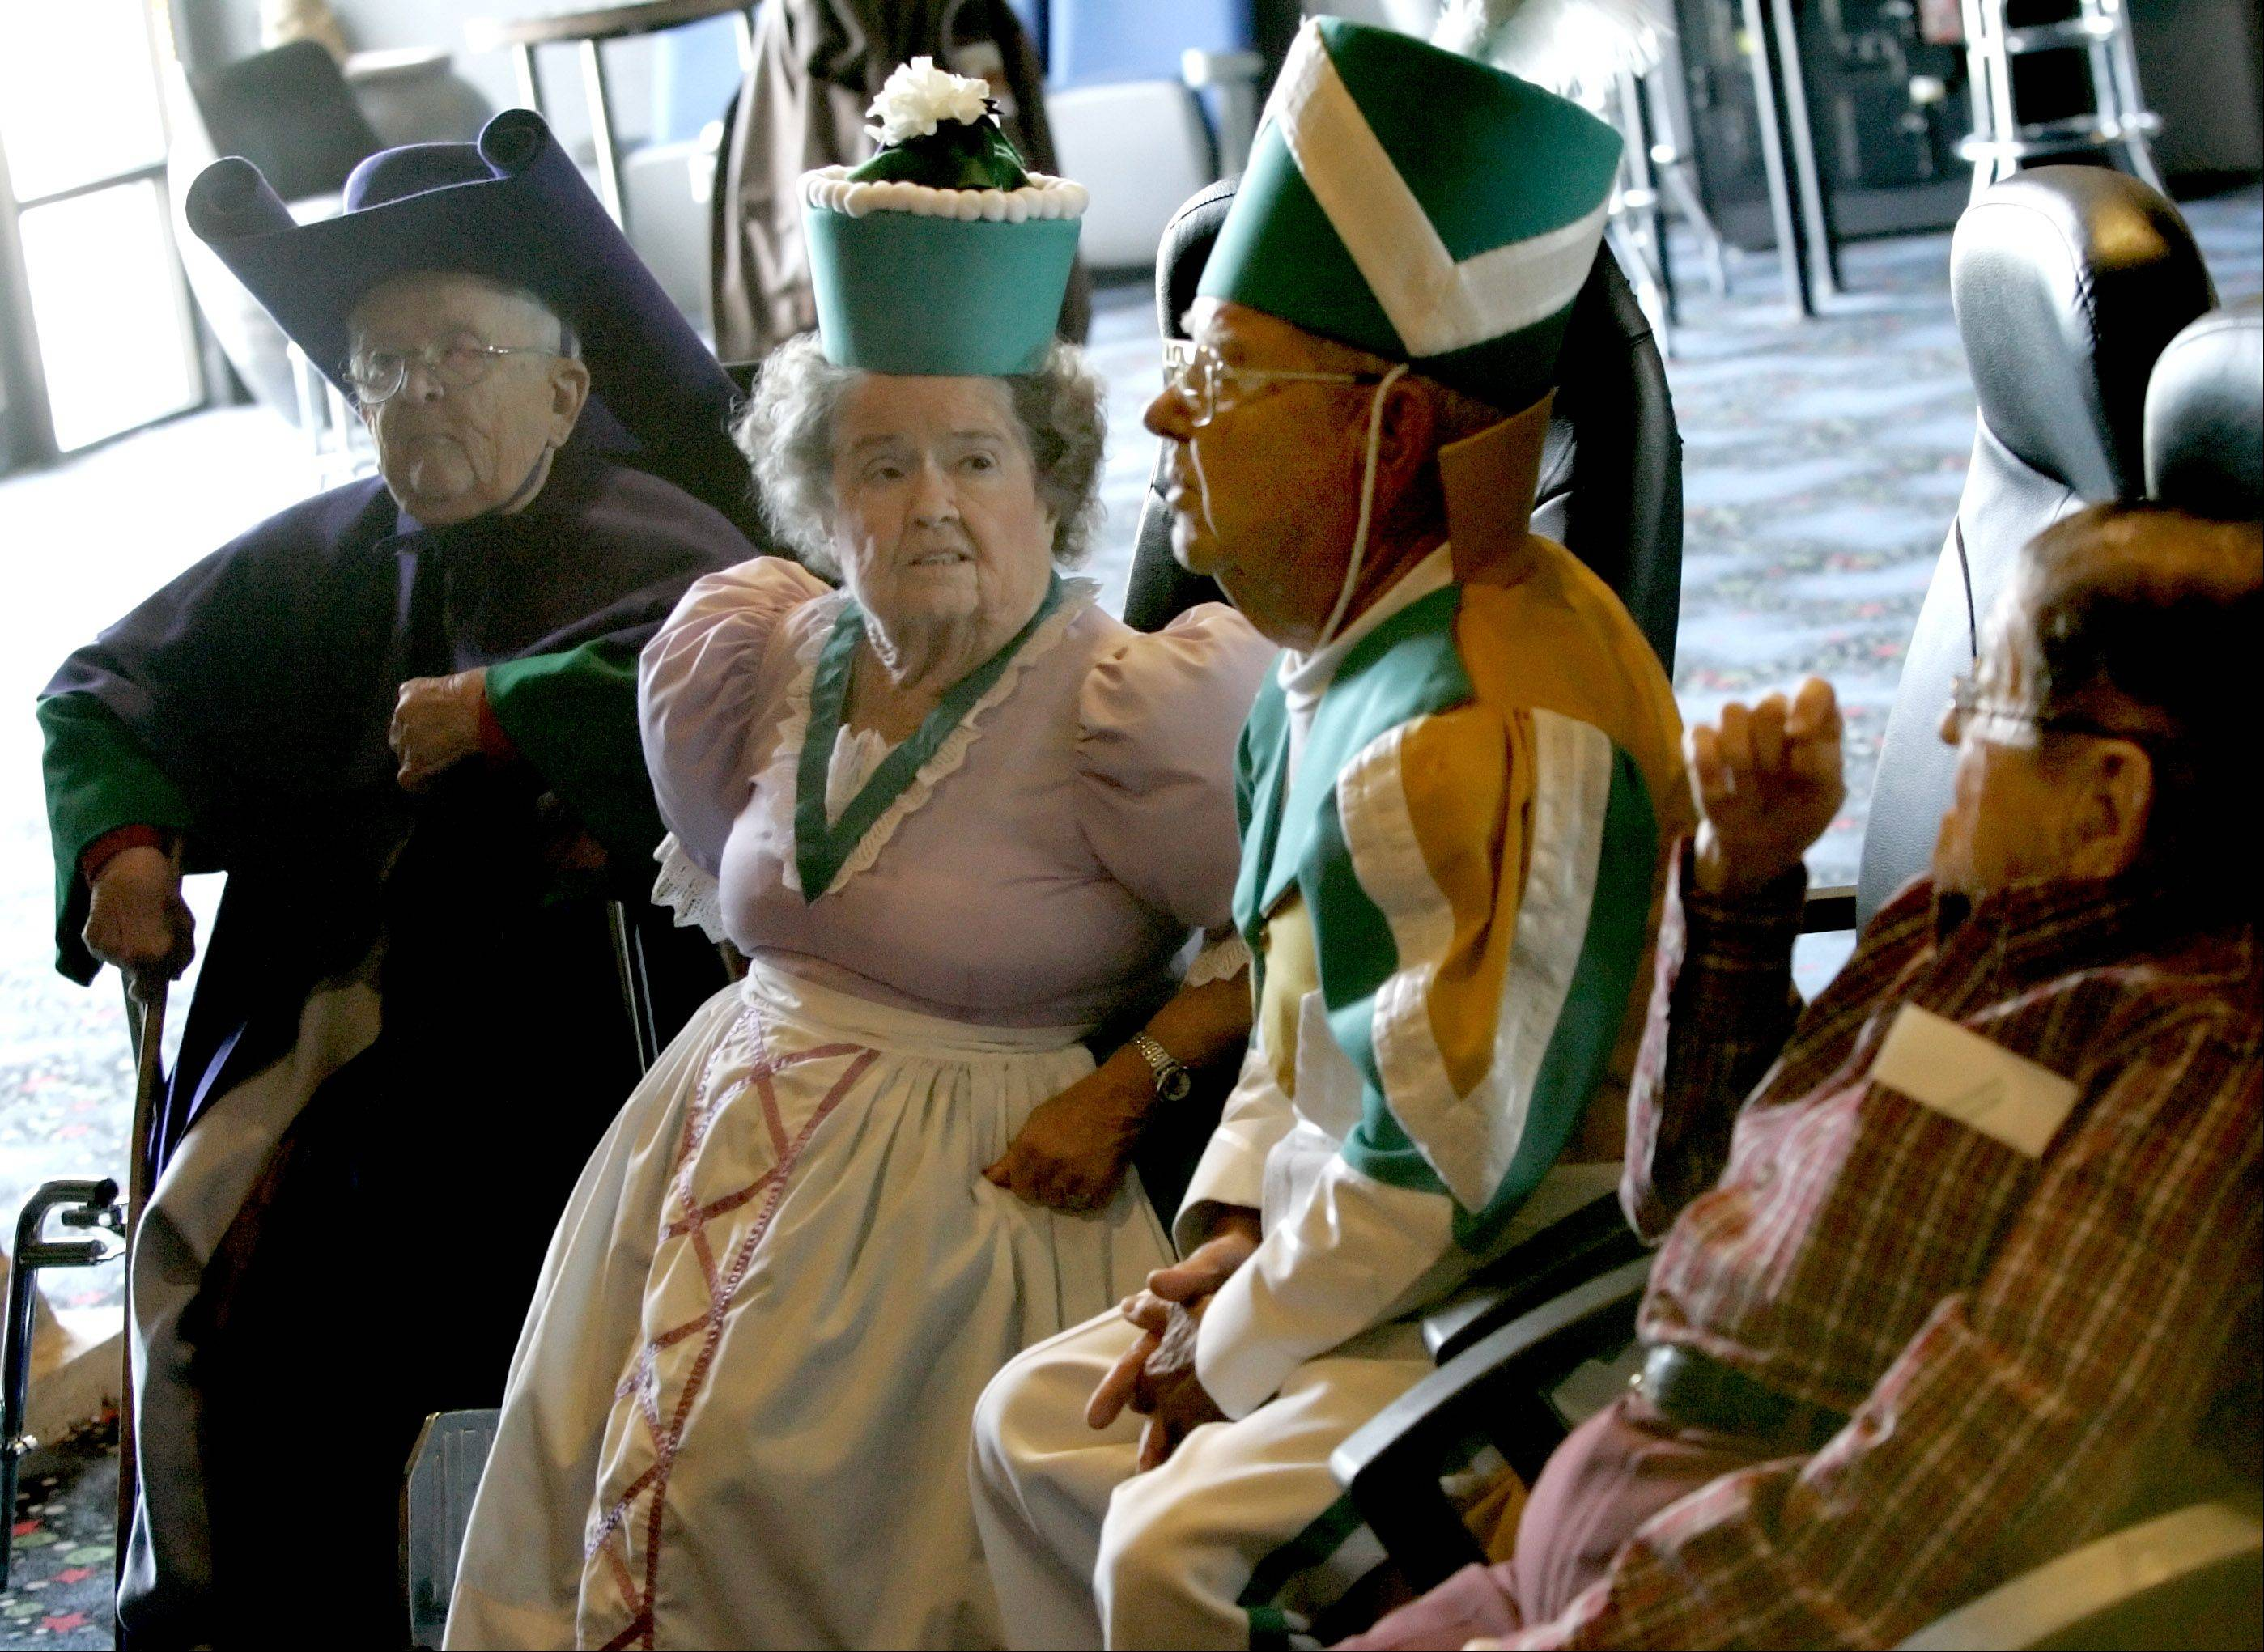 From left, Menhardt Raabe, Margaret Pellegrini, Clarence Swenson and Karl Slover, all munchkins that appeared in the film The Wizard of Oz in Woodridge at the Hollywood Blvd movie theater for a showing of the film in November 2005.